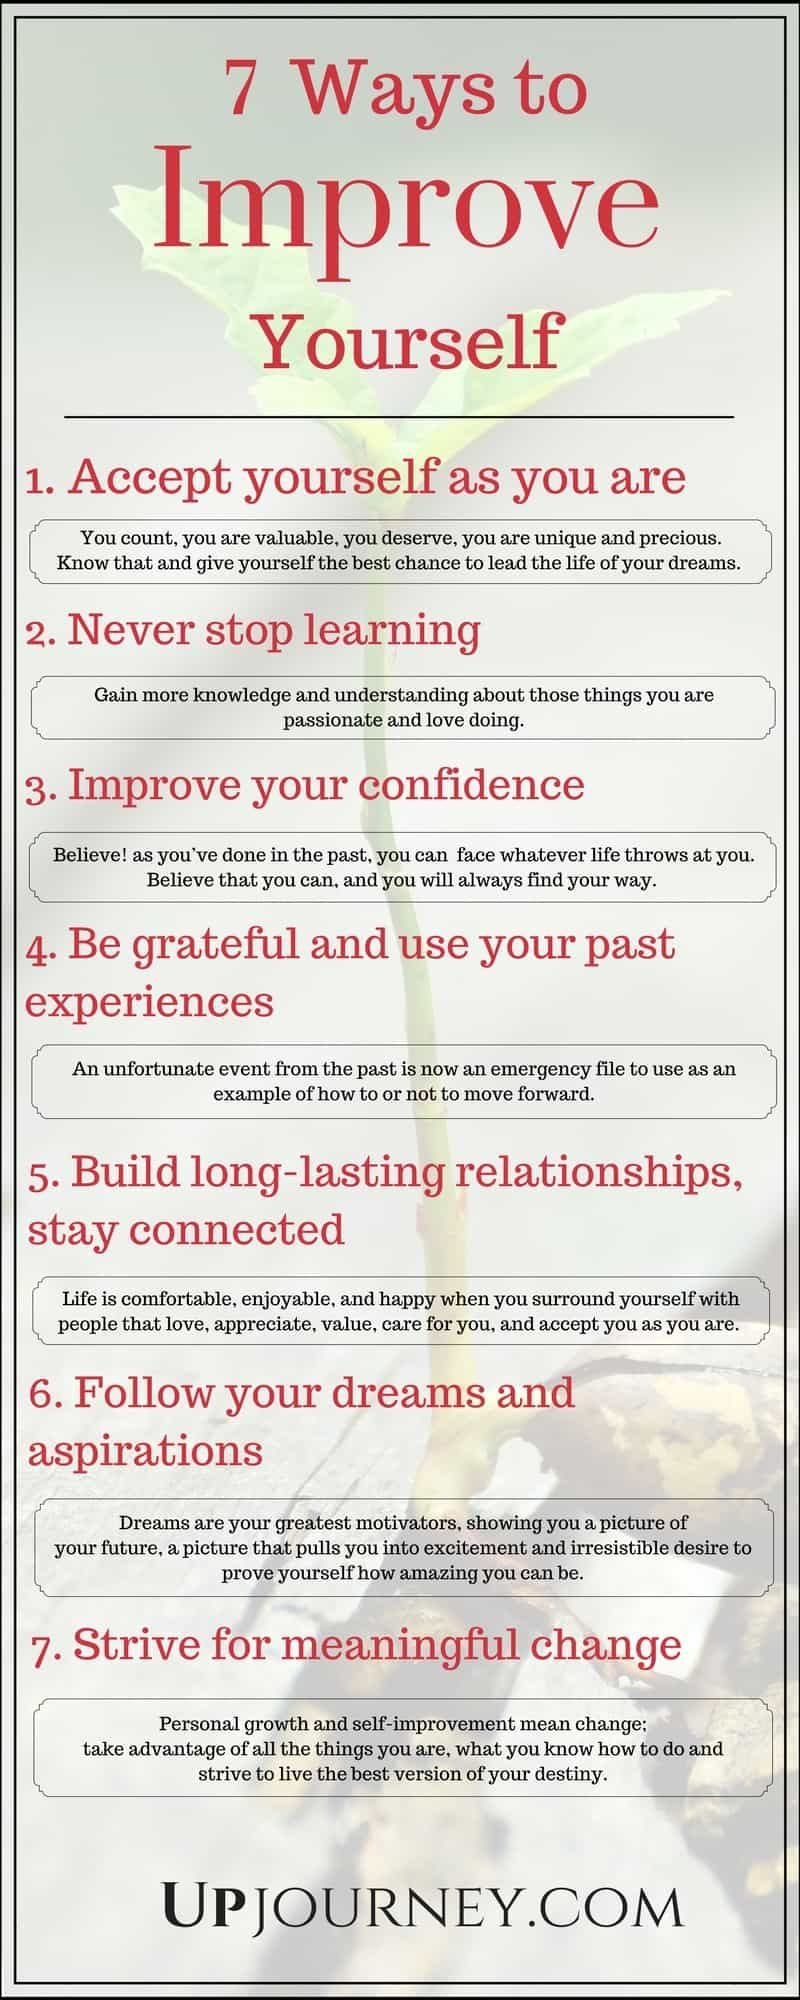 To things improve yourself to do 10 Ways